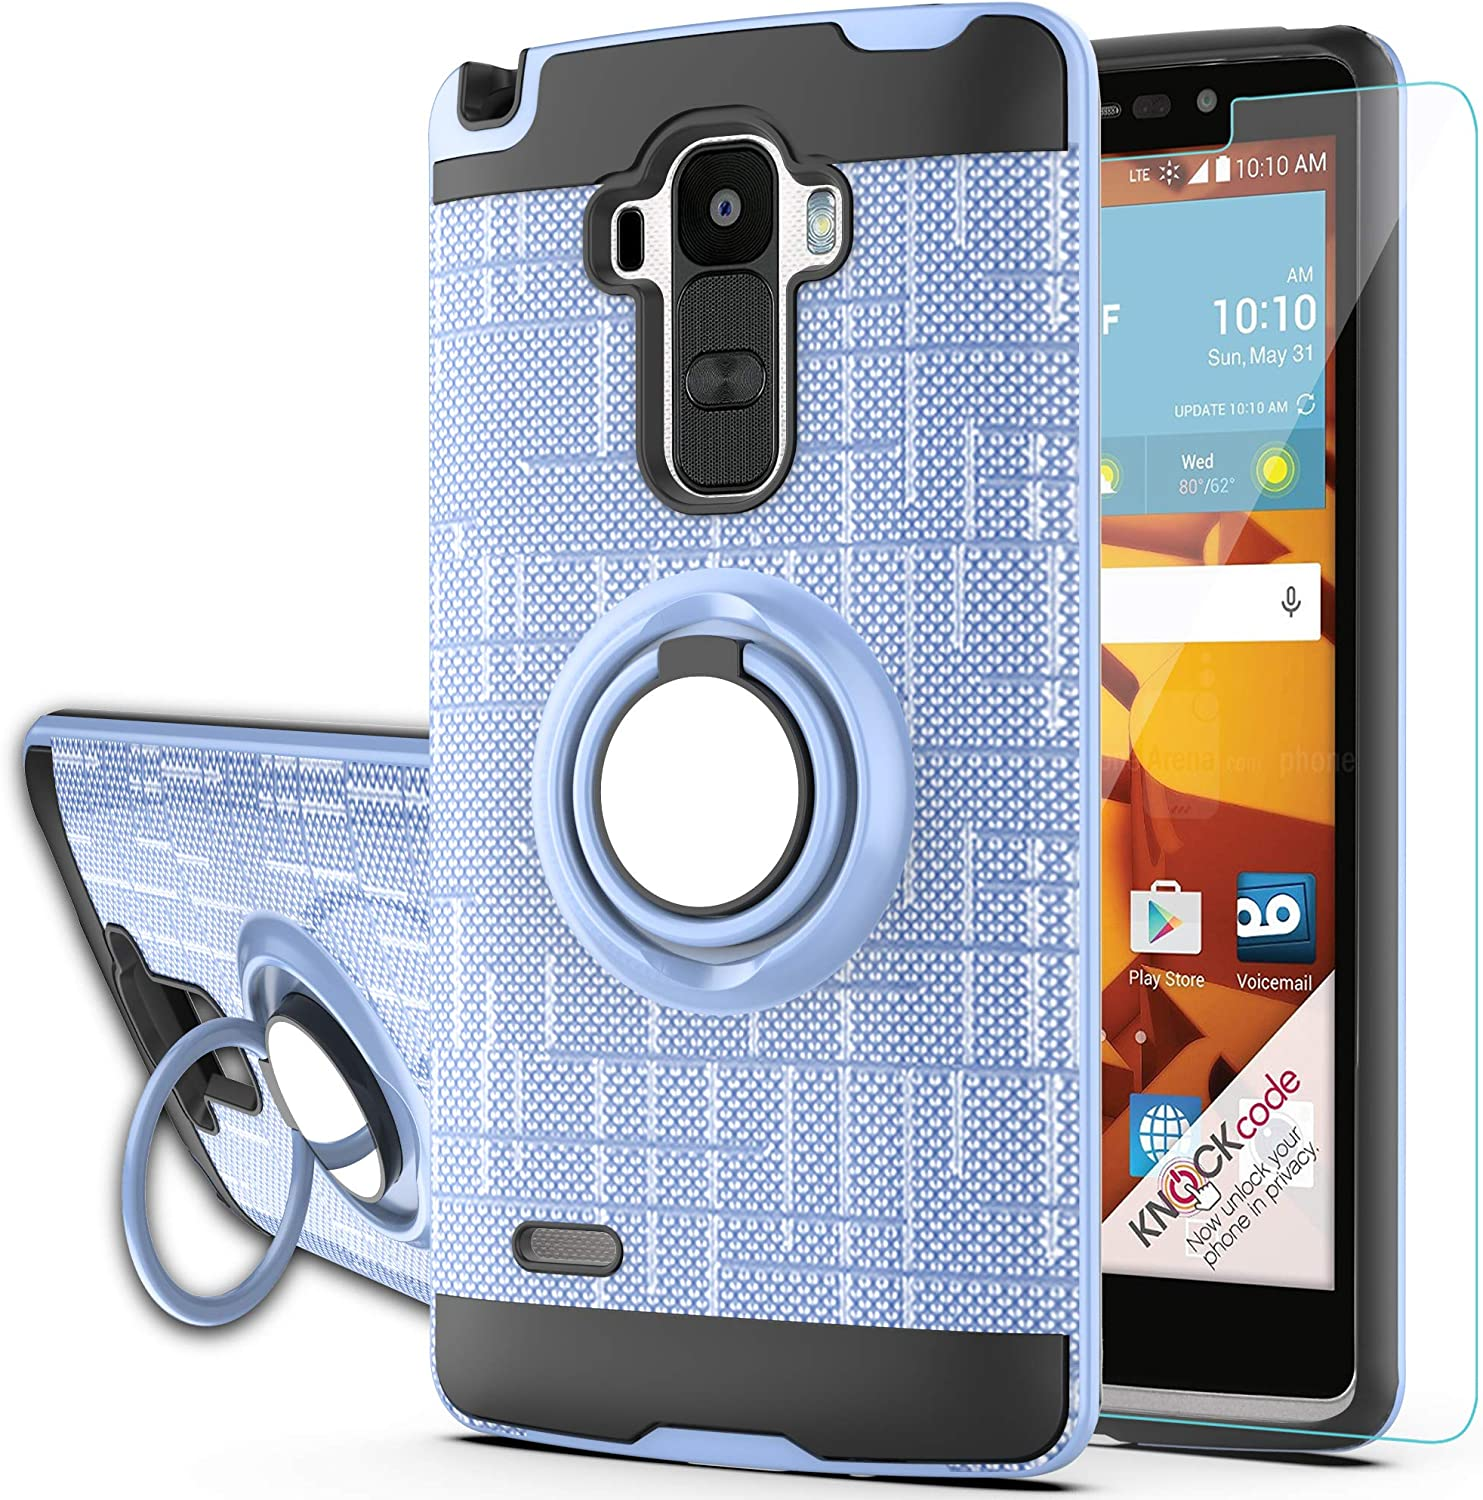 Ymhxcy for LG G4 Stylus Case,LG G Stylo Phone Case with HD Phone Screen Protector,(Not Fit LG G4) 360 Degree Rotating Ring & Bracket Dual Layer Resistant Back Cover for LS770 KC2-ZH Metal Slate